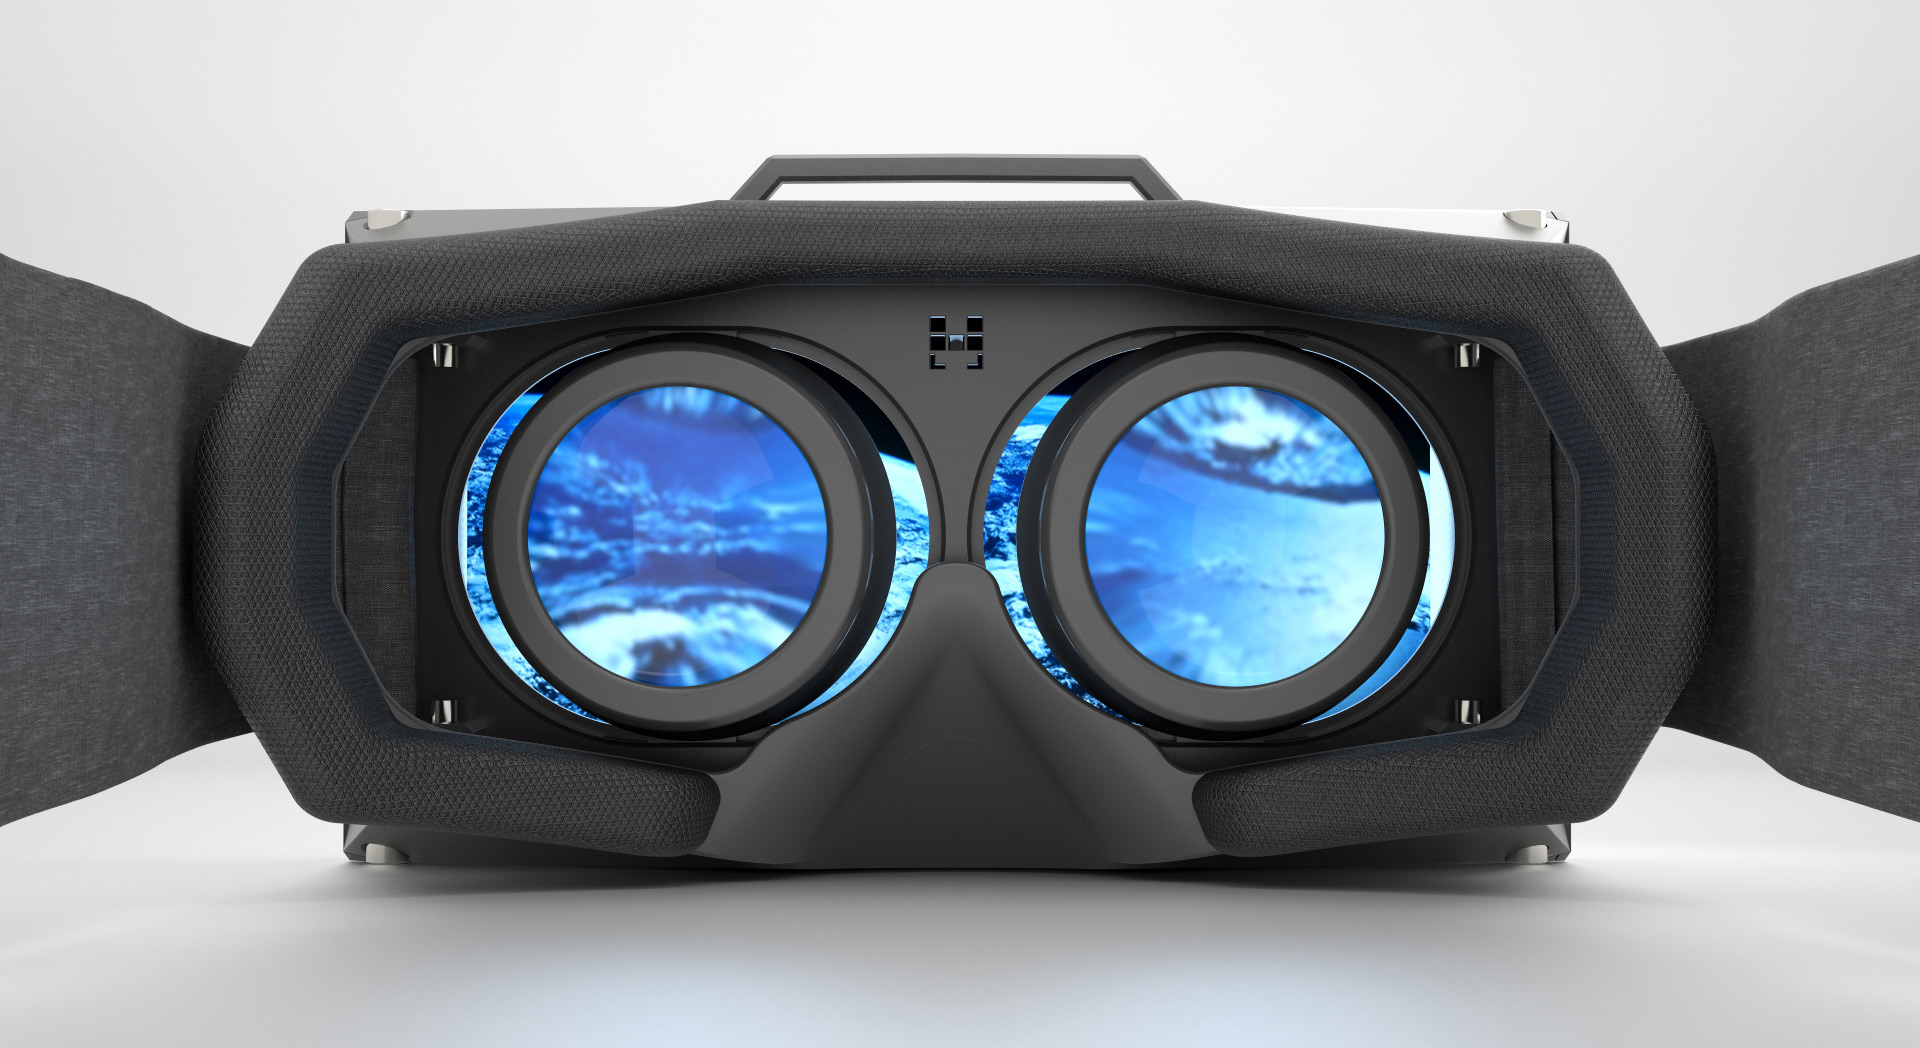 oculus-rift-inside_future-in-video-games.jpg